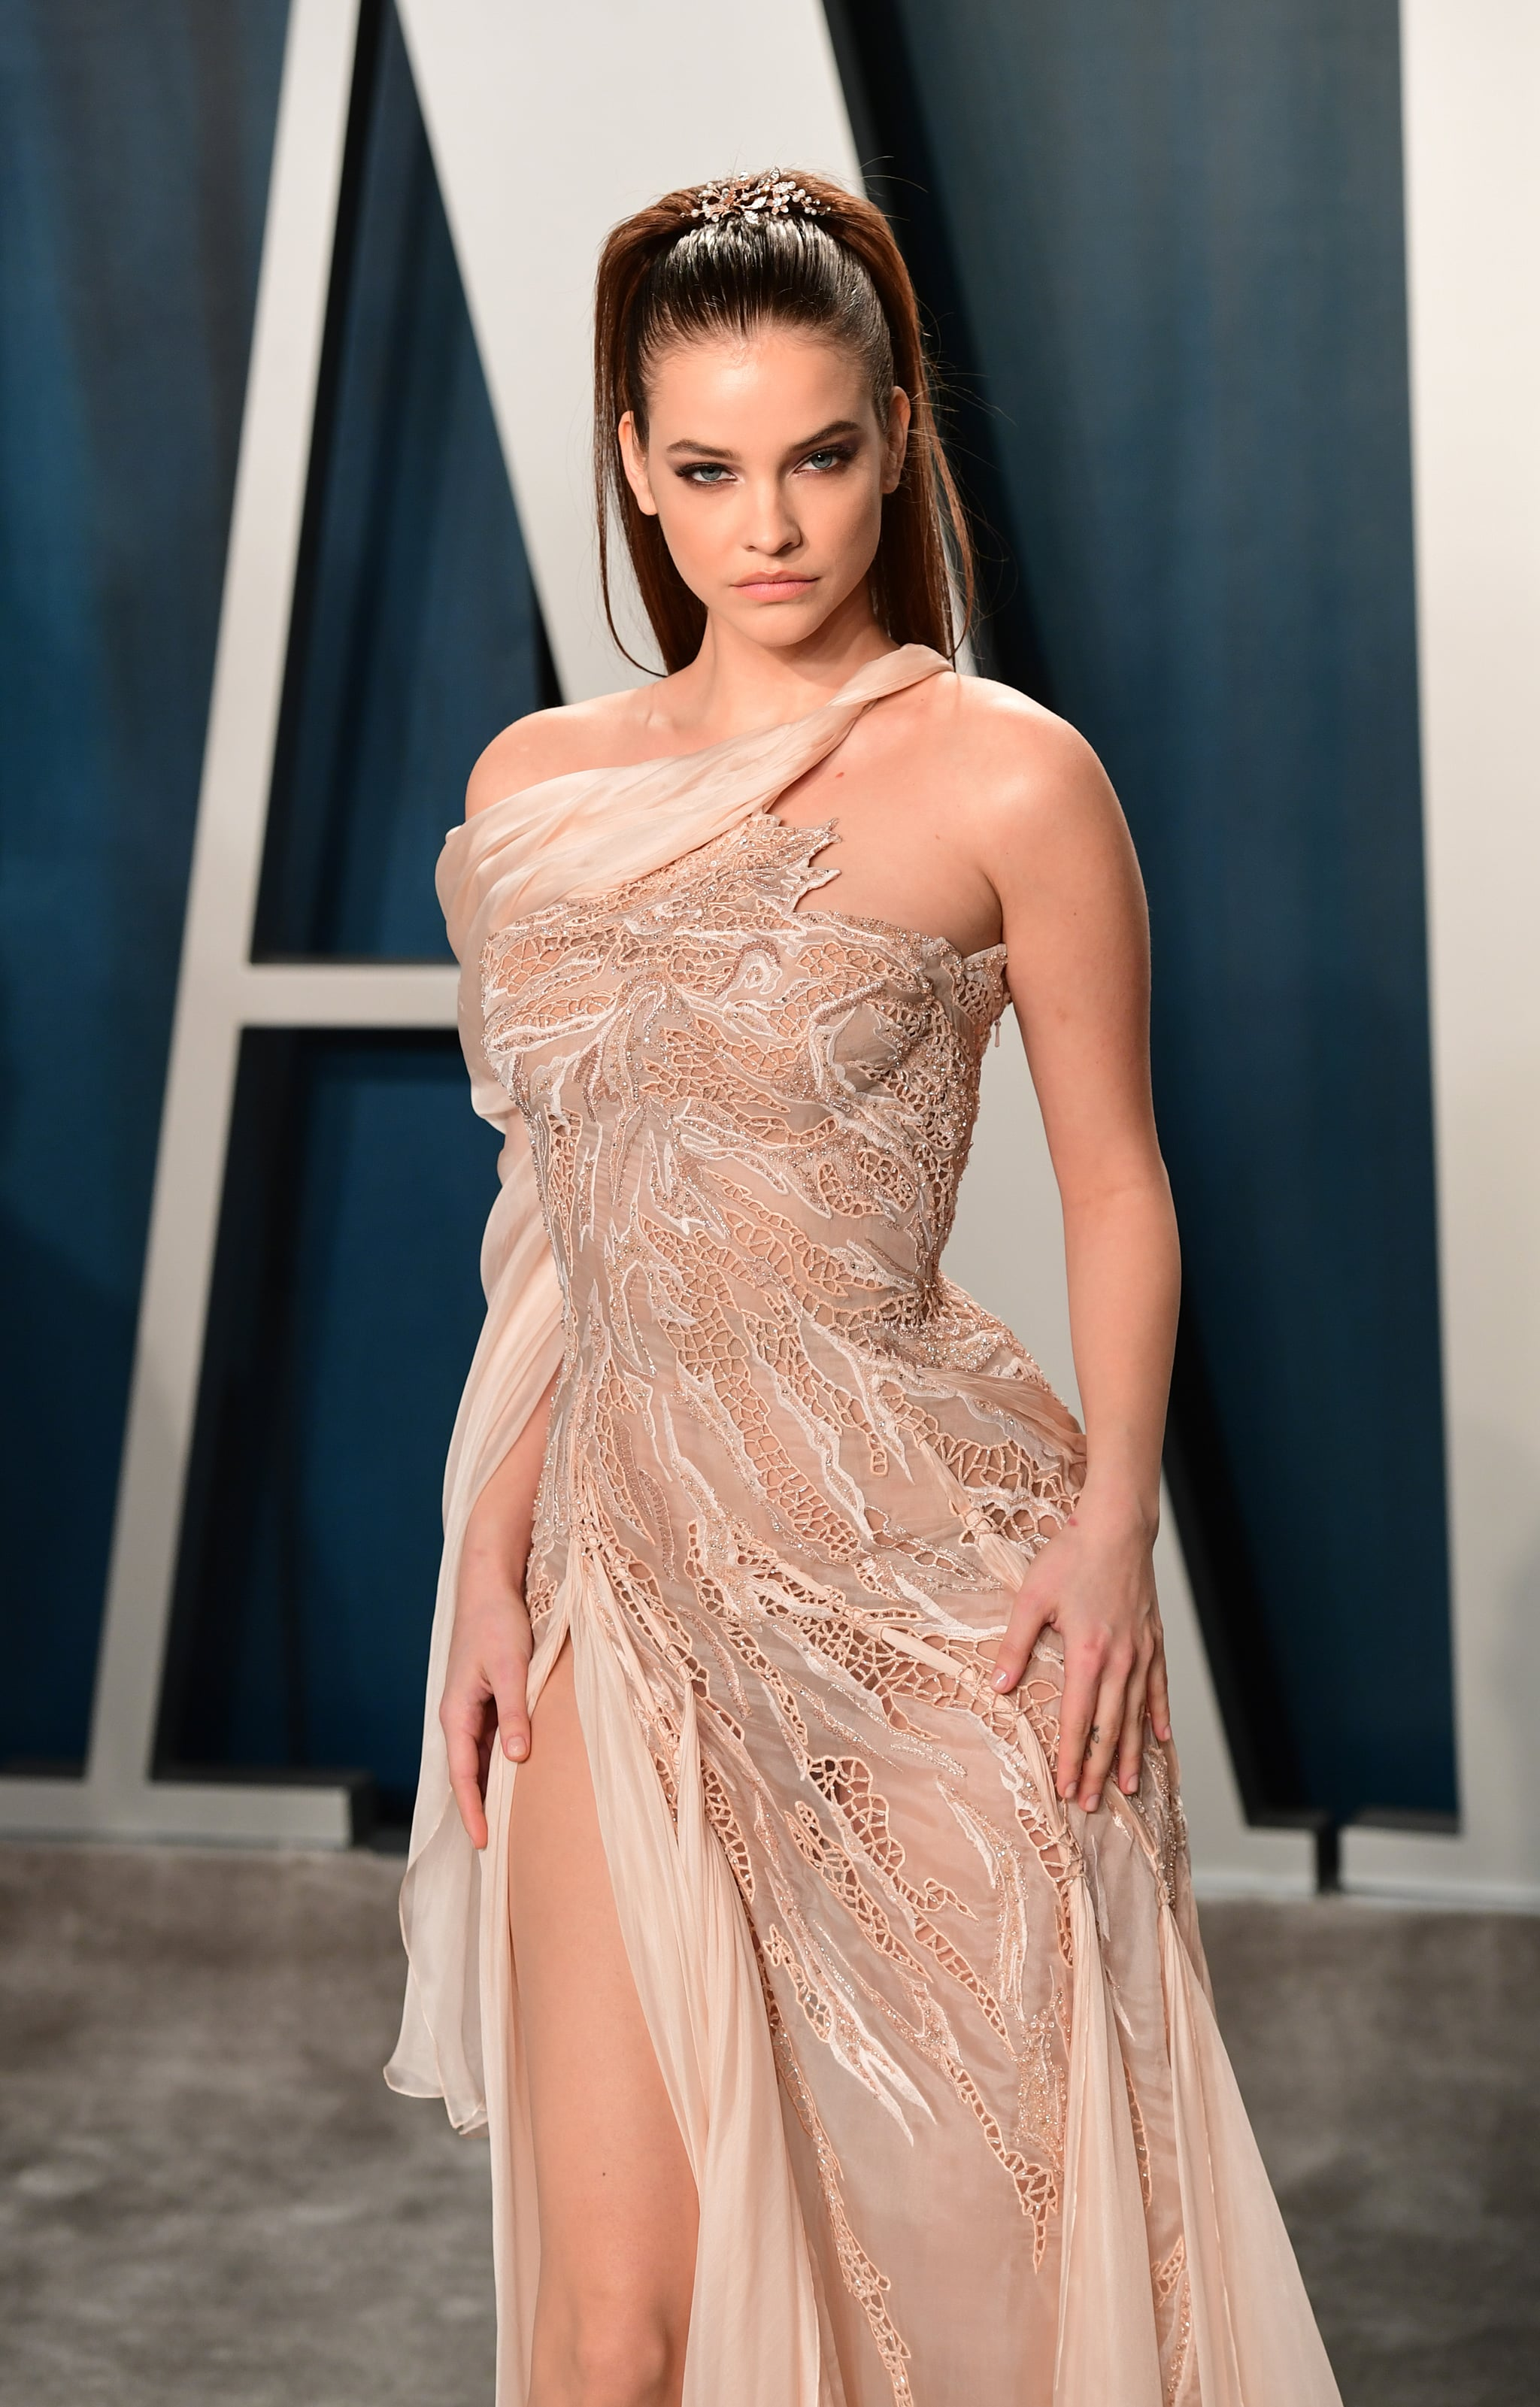 Barbara Palvin At The Vanity Fair Oscars Afterparty 2020 See Every Incredible Dress At The Vanity Fair Oscars Afterparty Popsugar Fashion Photo 91